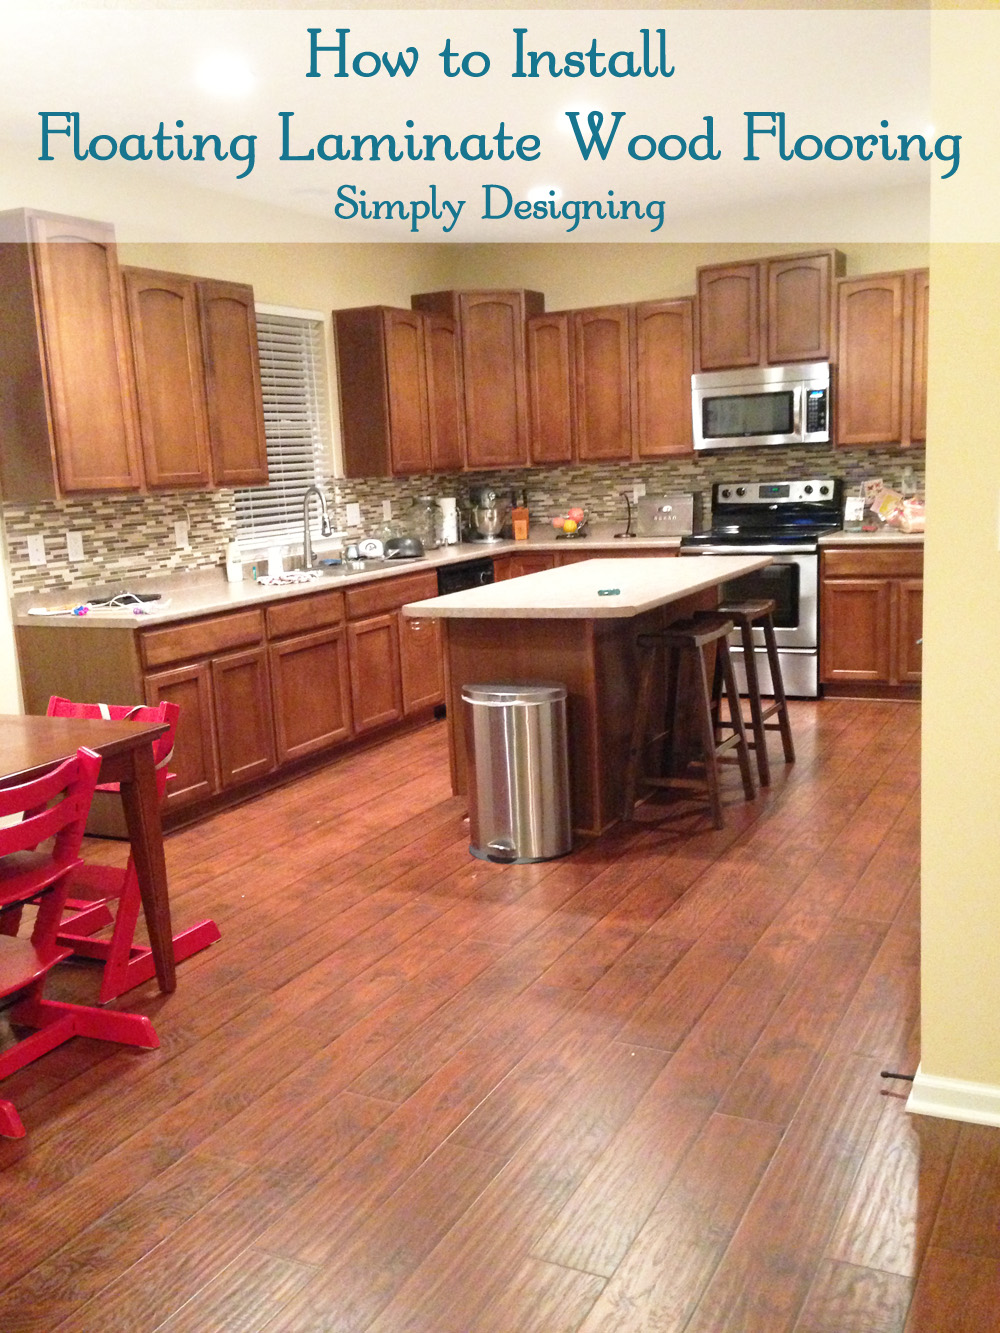 Laminate flooring how to install laminate flooring kitchen for Kitchen flooring installation